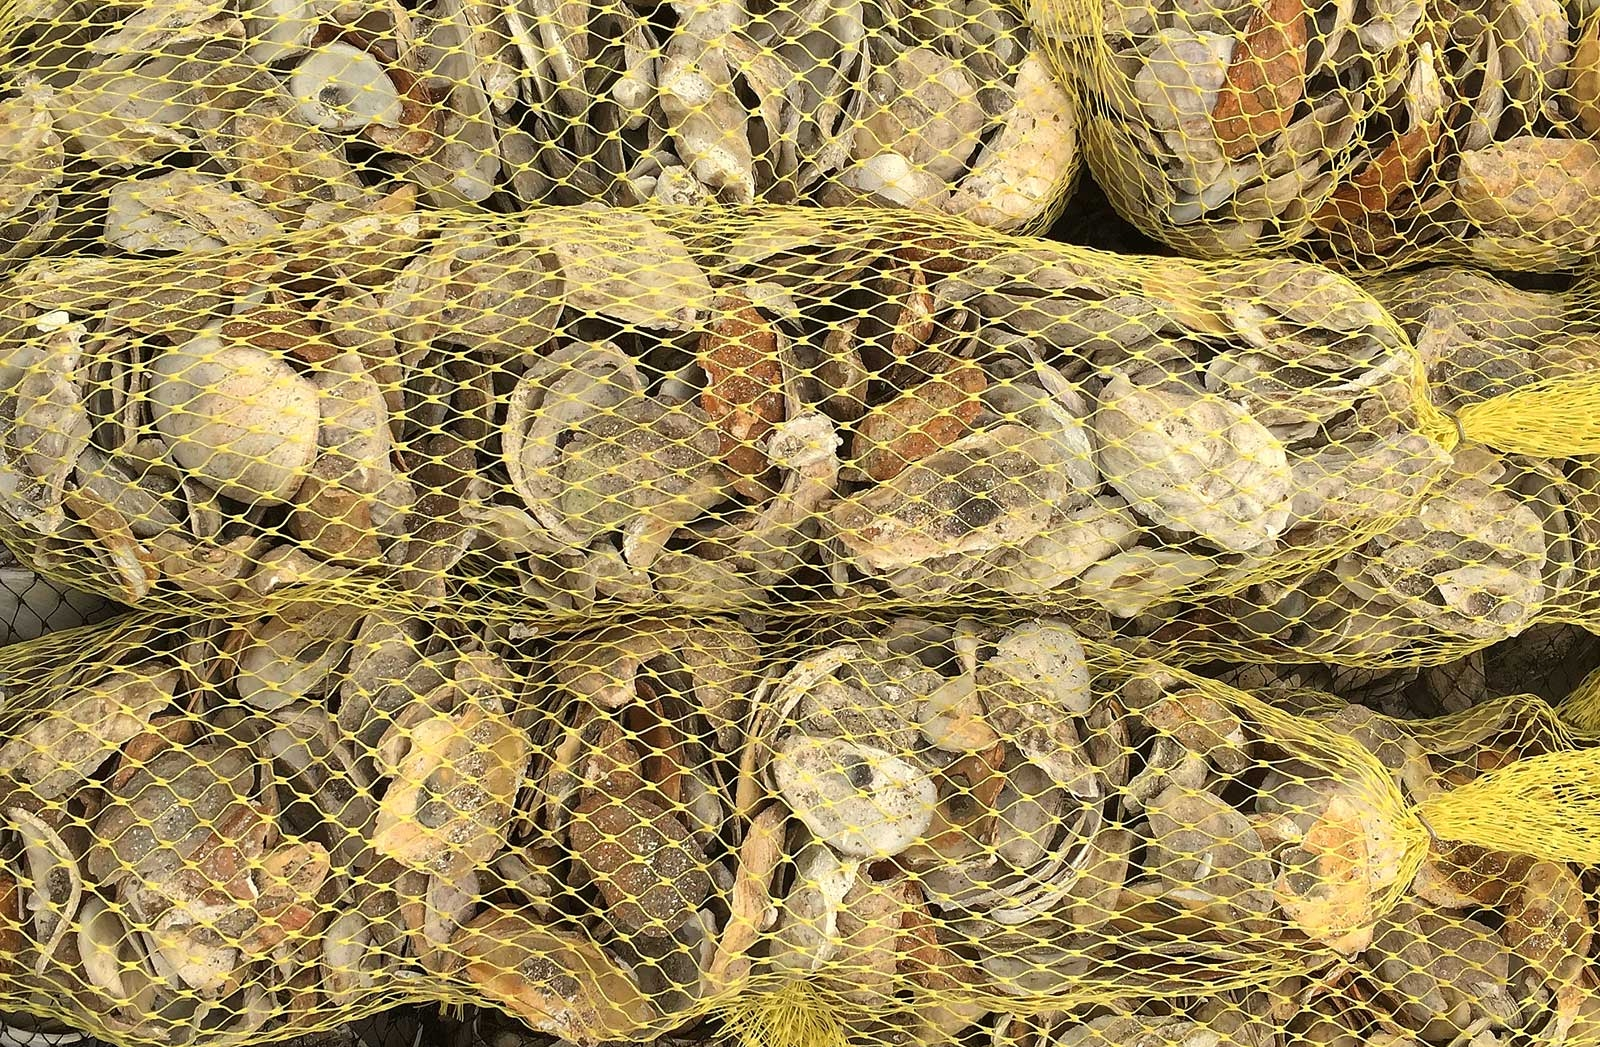 Remote Set - Oyster Reefs - Coastal Waters RestorationA.R.C. is one of the only hatcheries with the experience and the capacity to produce seed specifically for growing on recycled shell in cultch bags to meet the expanding demand for man-made oyster reefs. We have a product line designed specifically around the unique needs of this area of the industry and the techniques and growing tanks and to nurture the larvae to adhere to the recycled shell before the bags are taken from our facility and placed by towns into their coastal waters. A large number of public and not-for-profit organizations have dedicated significant resources to expanding oyster reef buildout in their communities. Oyster reefs provide powerful water filtering capability, assist with coastal erosion mitigation and can protect low lying areas from storm surges.